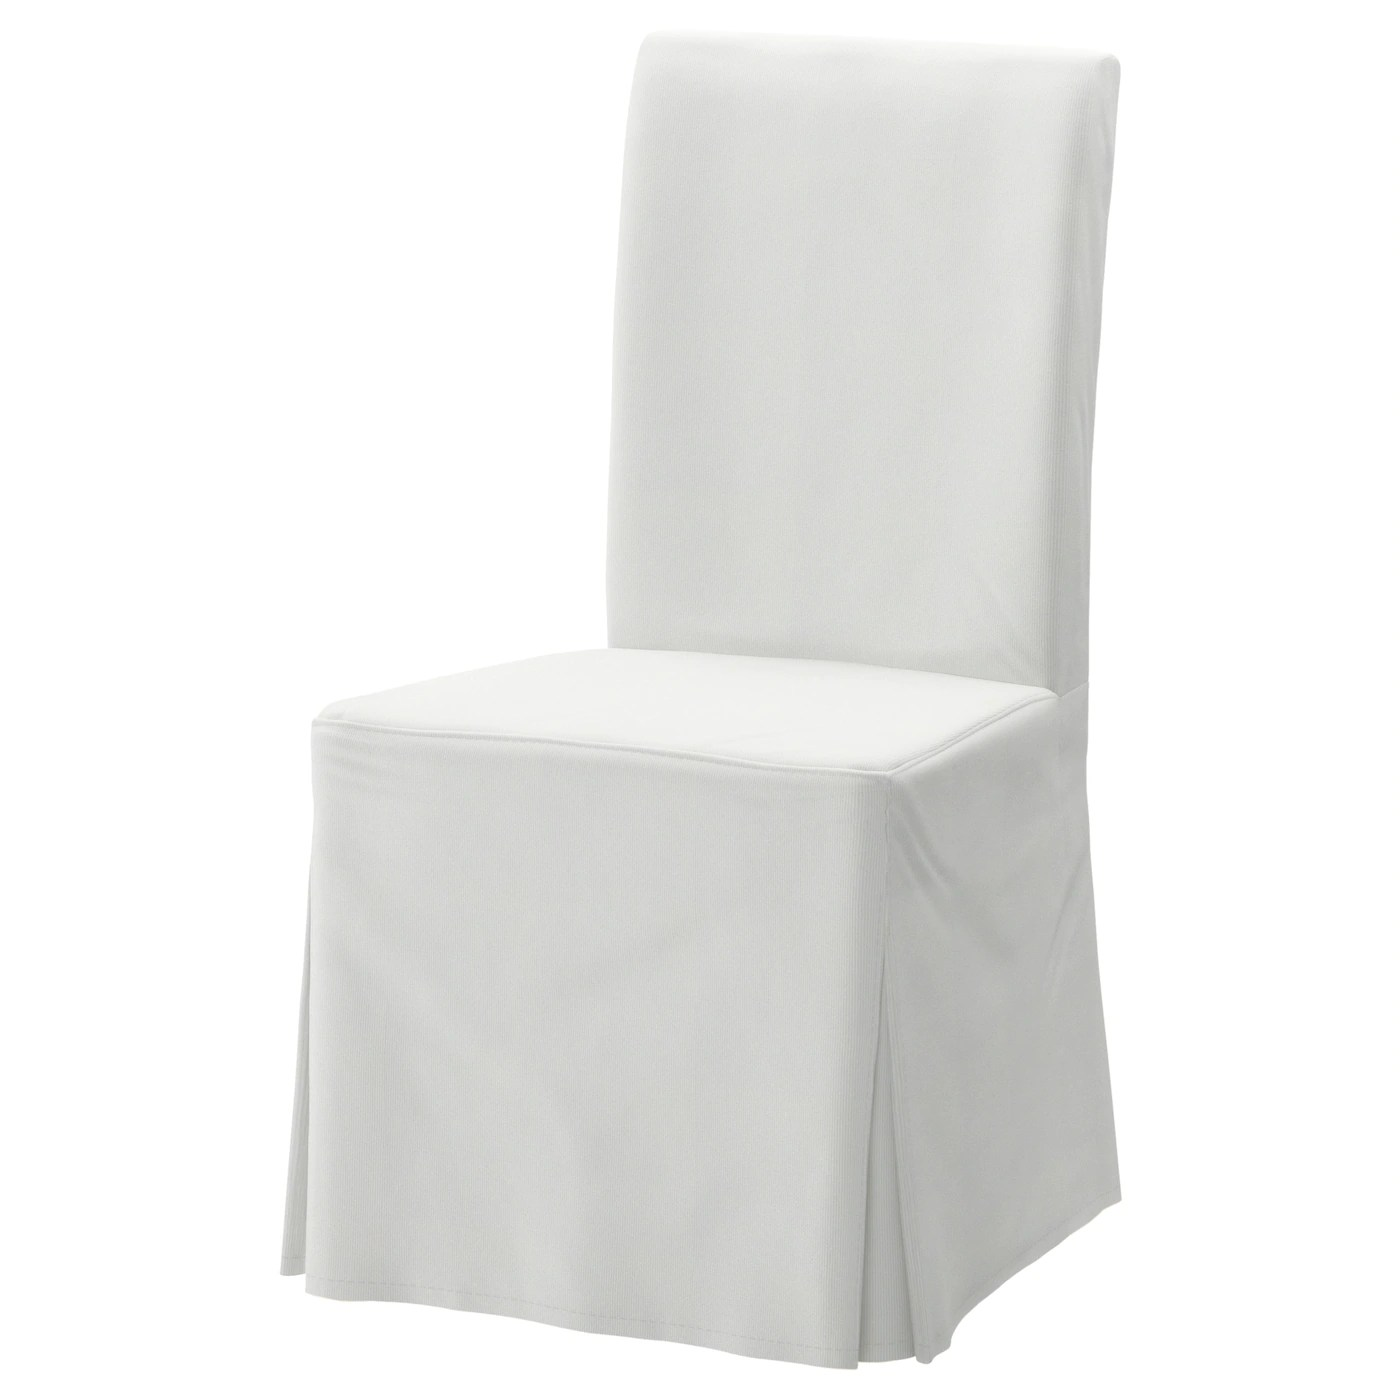 white chair sashes queen throne dining covers ikea dublin ireland